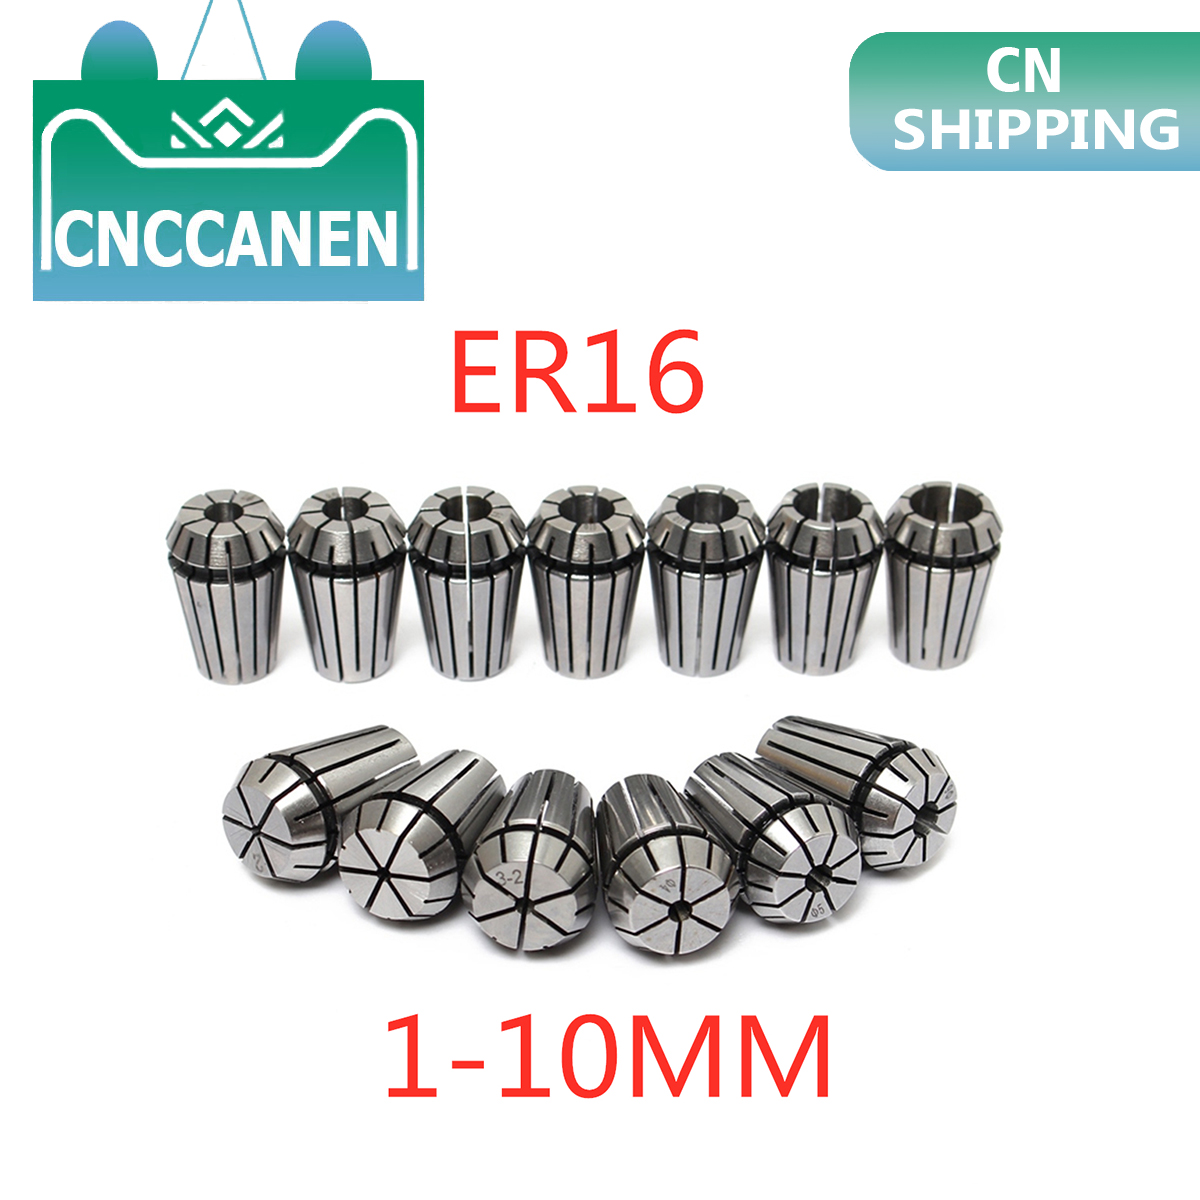 1PC ER16  1/4 6.35 1/8 3.175 1 2 3 4 5 6 7 8 9 10 Mm Spring Collet Set For CNC Engraving Machine Lathe Mill Tool